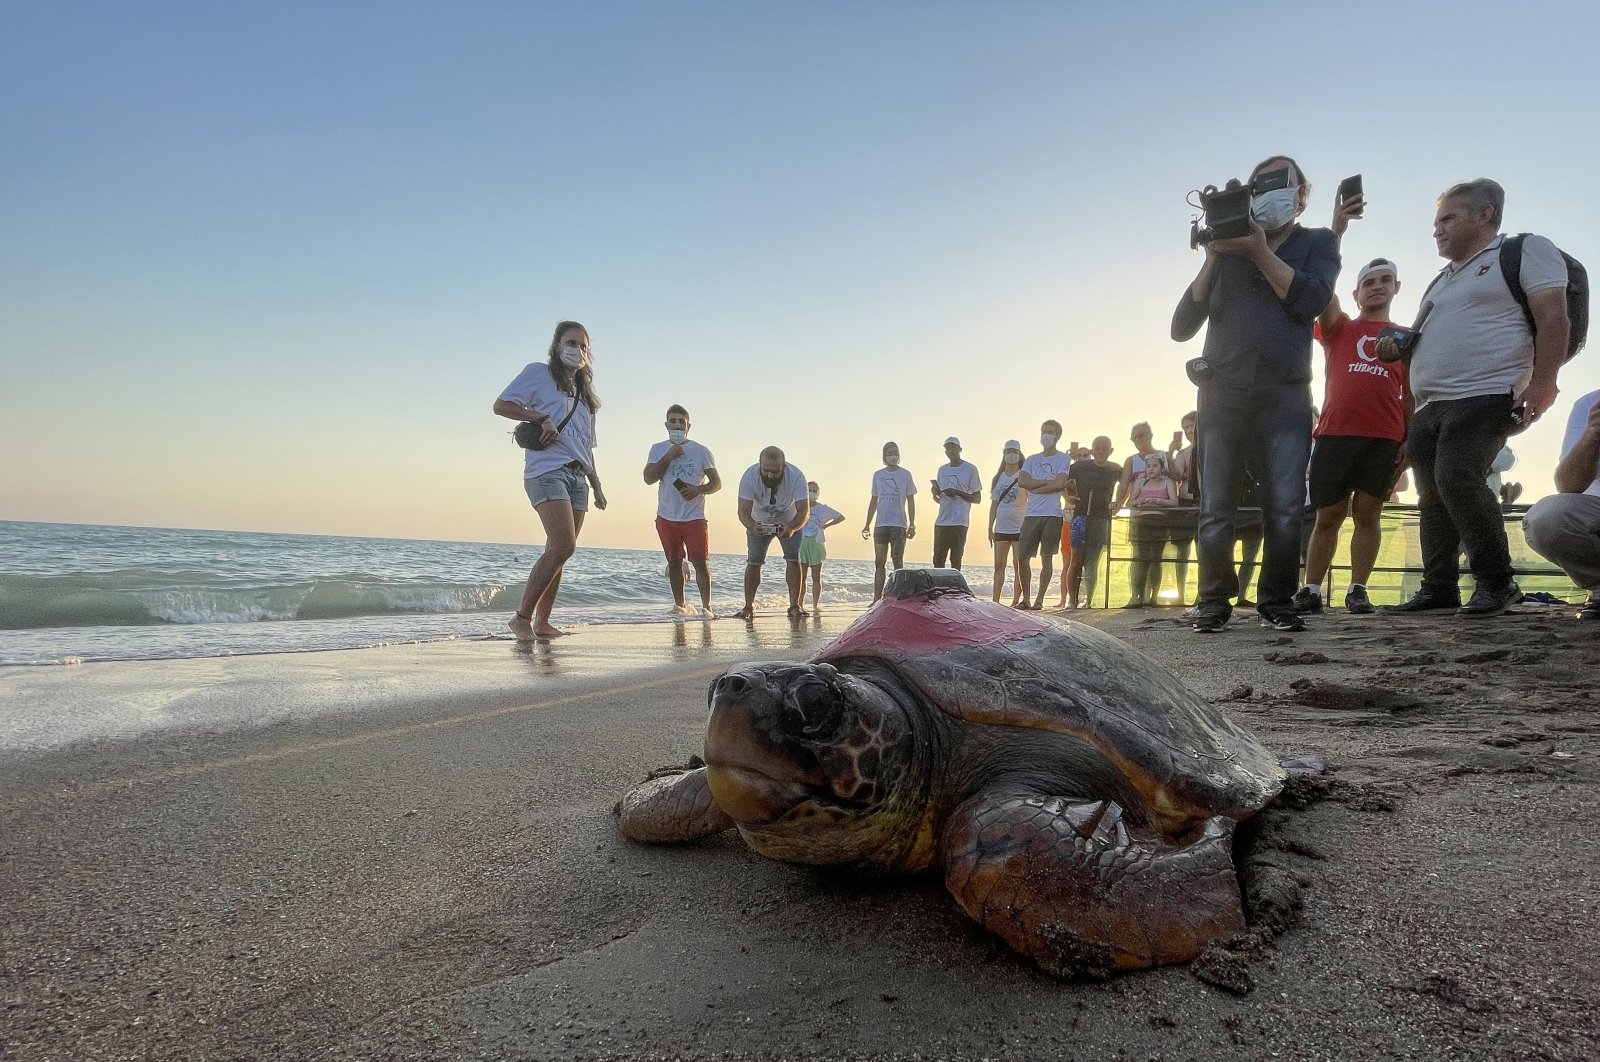 People watch as a loggerhead sea turtle fitted with a tracking device is released, in Antalya, southern Turkey, Sept. 28, 2021. (AA PHOTO)